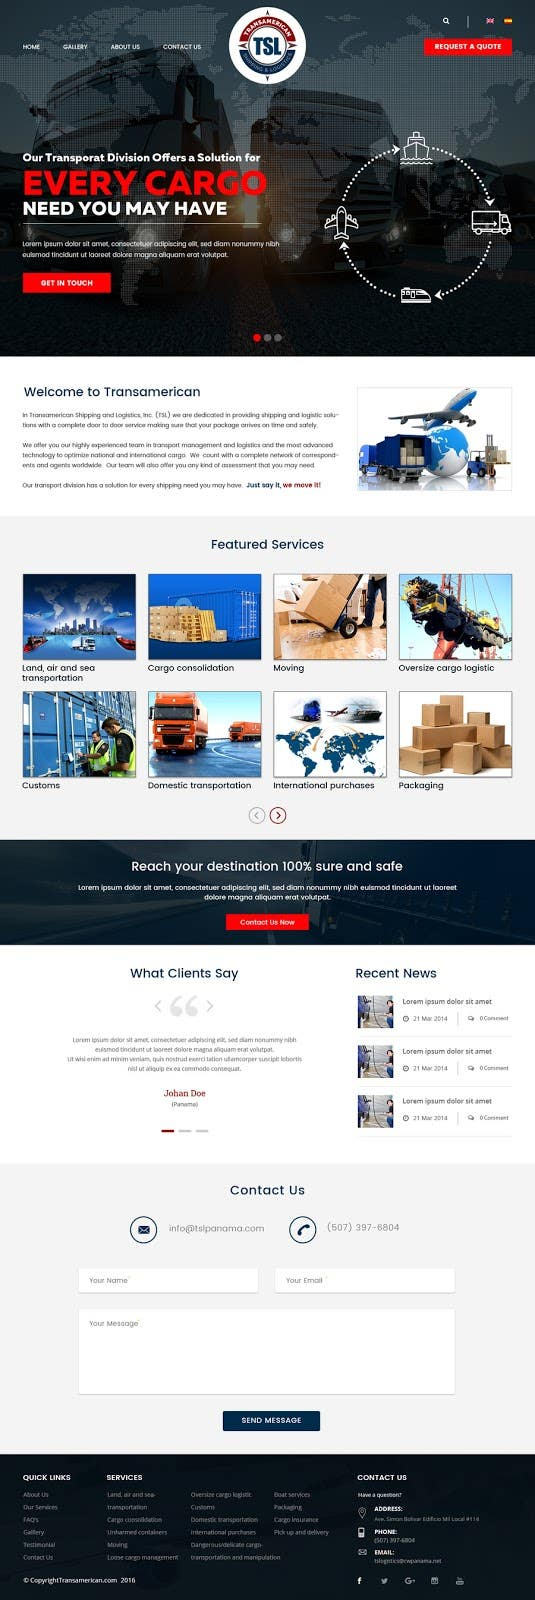 Showcase - website design - xsasdesign.jpg